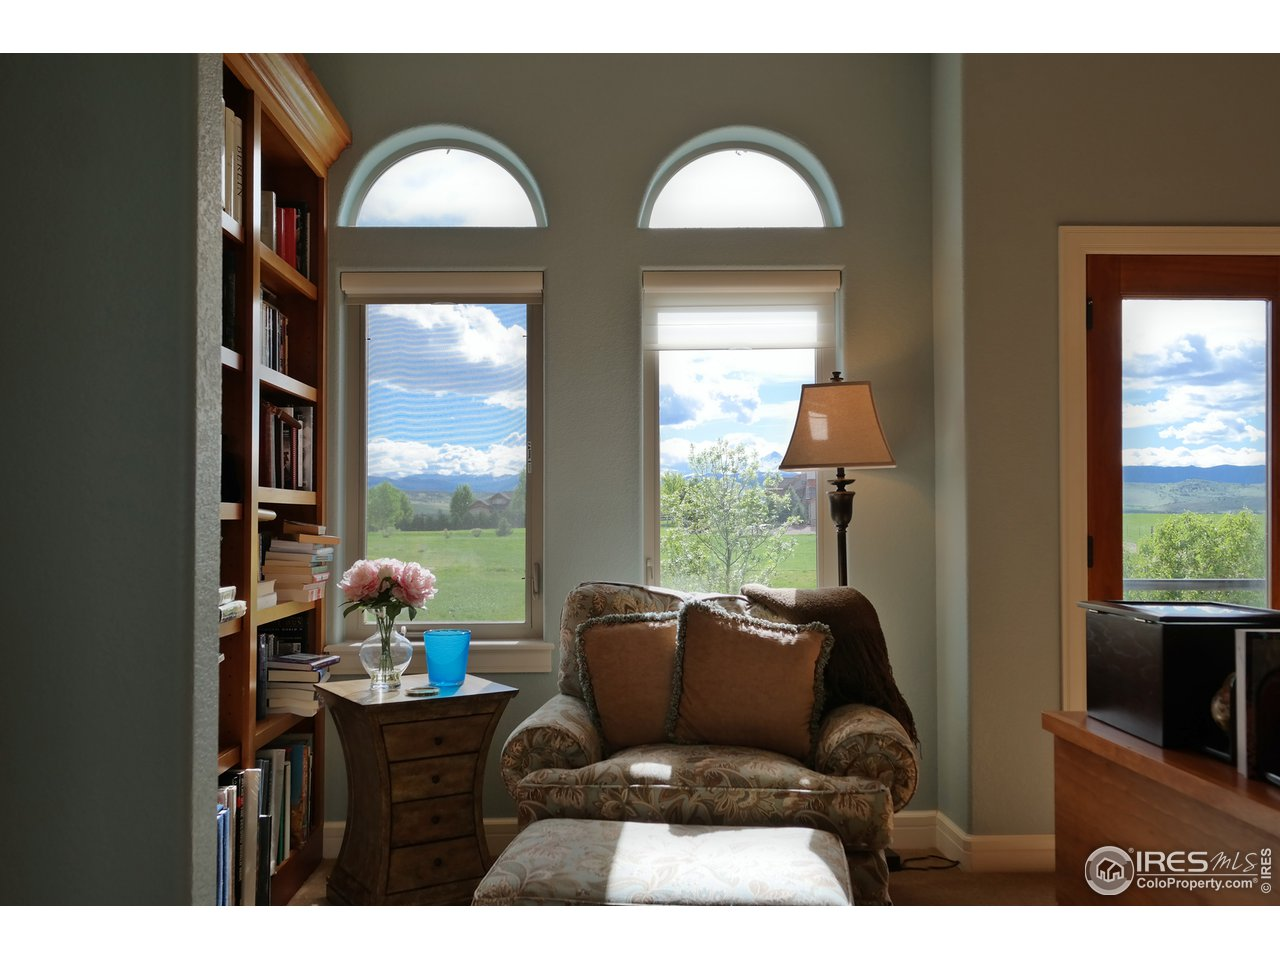 Cozy Nook w/Bookshelves for Personal Time